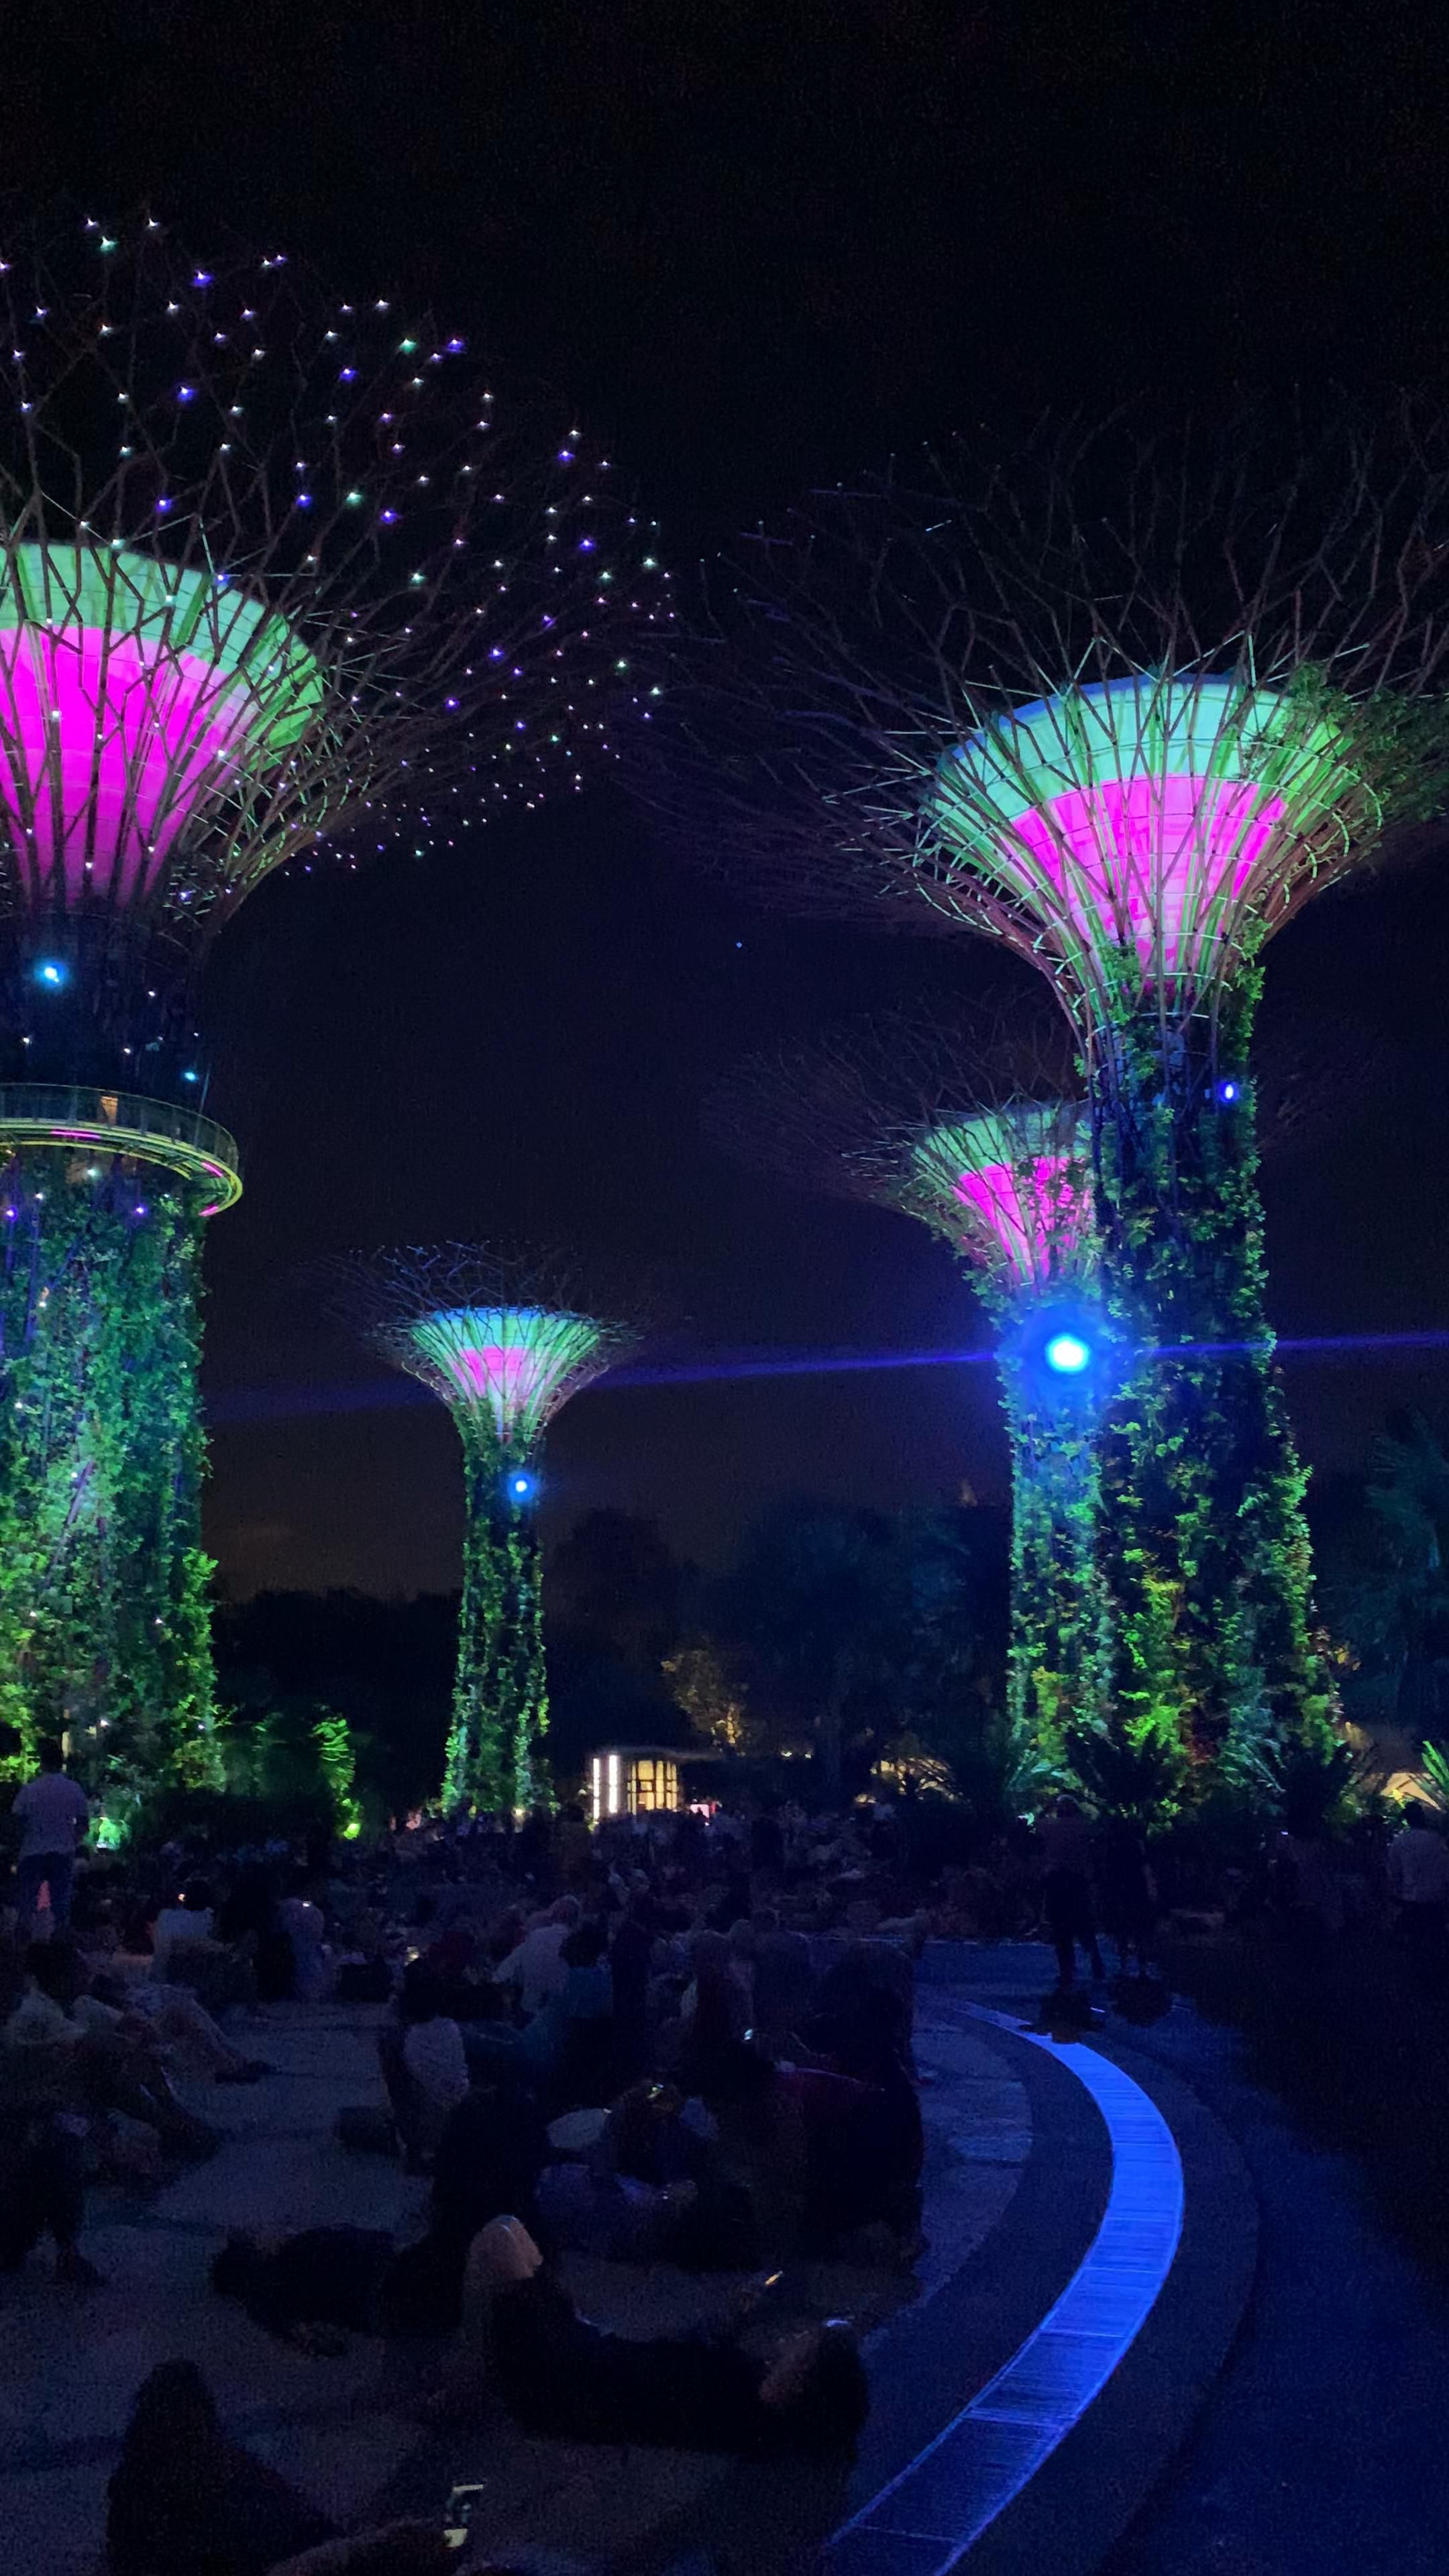 Gardens by the Bay light show in Singapore  #Singapore #garden #gardensbythebay #asia #lightshow #pretty #attractions #musical #colourful #night #best #top #instagrammable